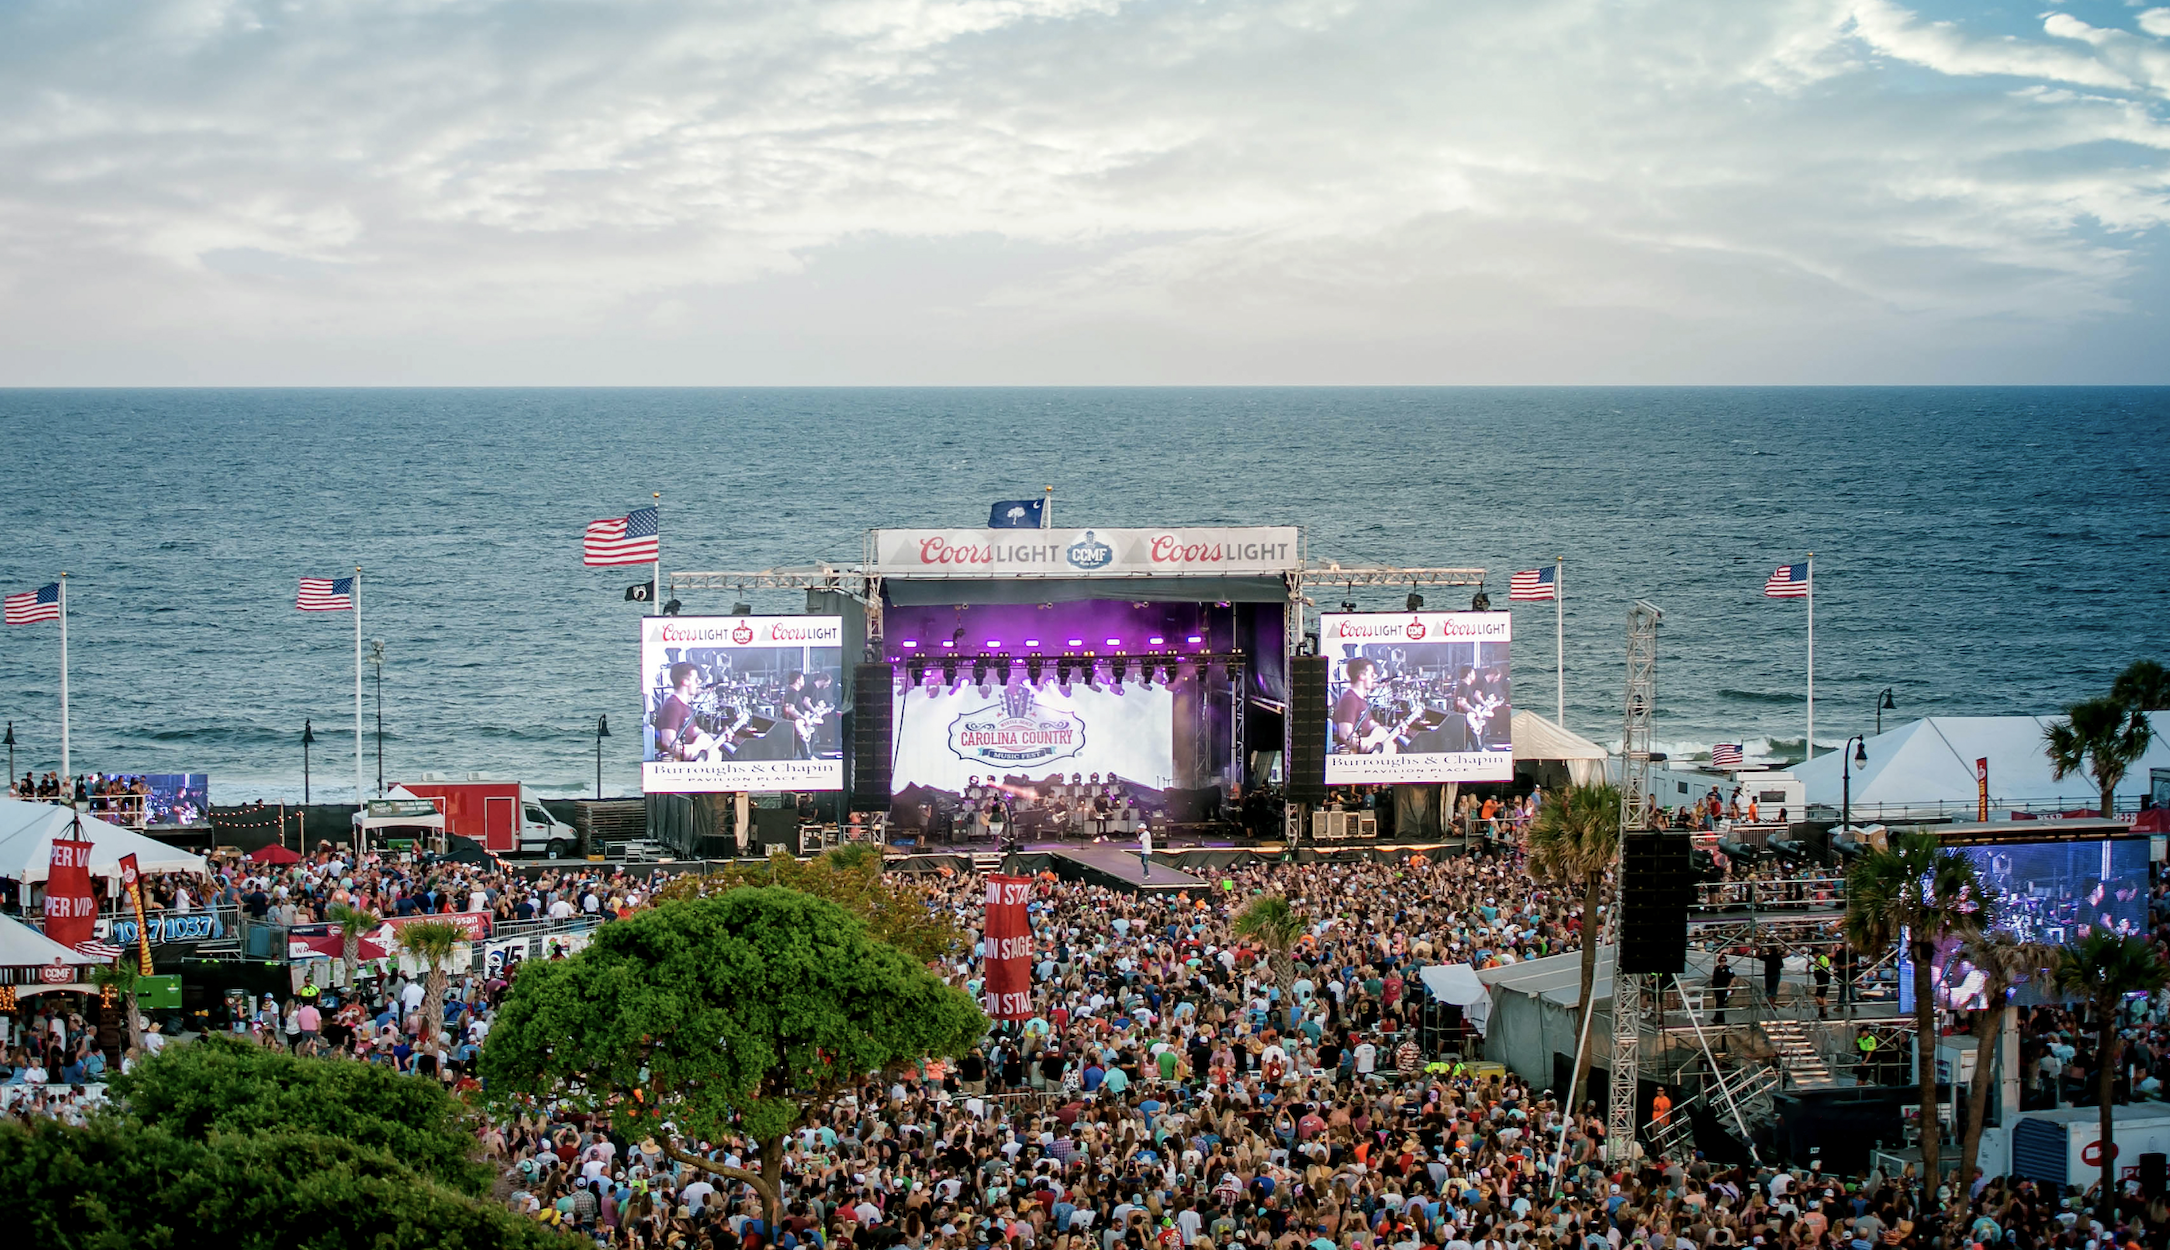 Carolina Country Music Festival, Myrtle Beach, SC